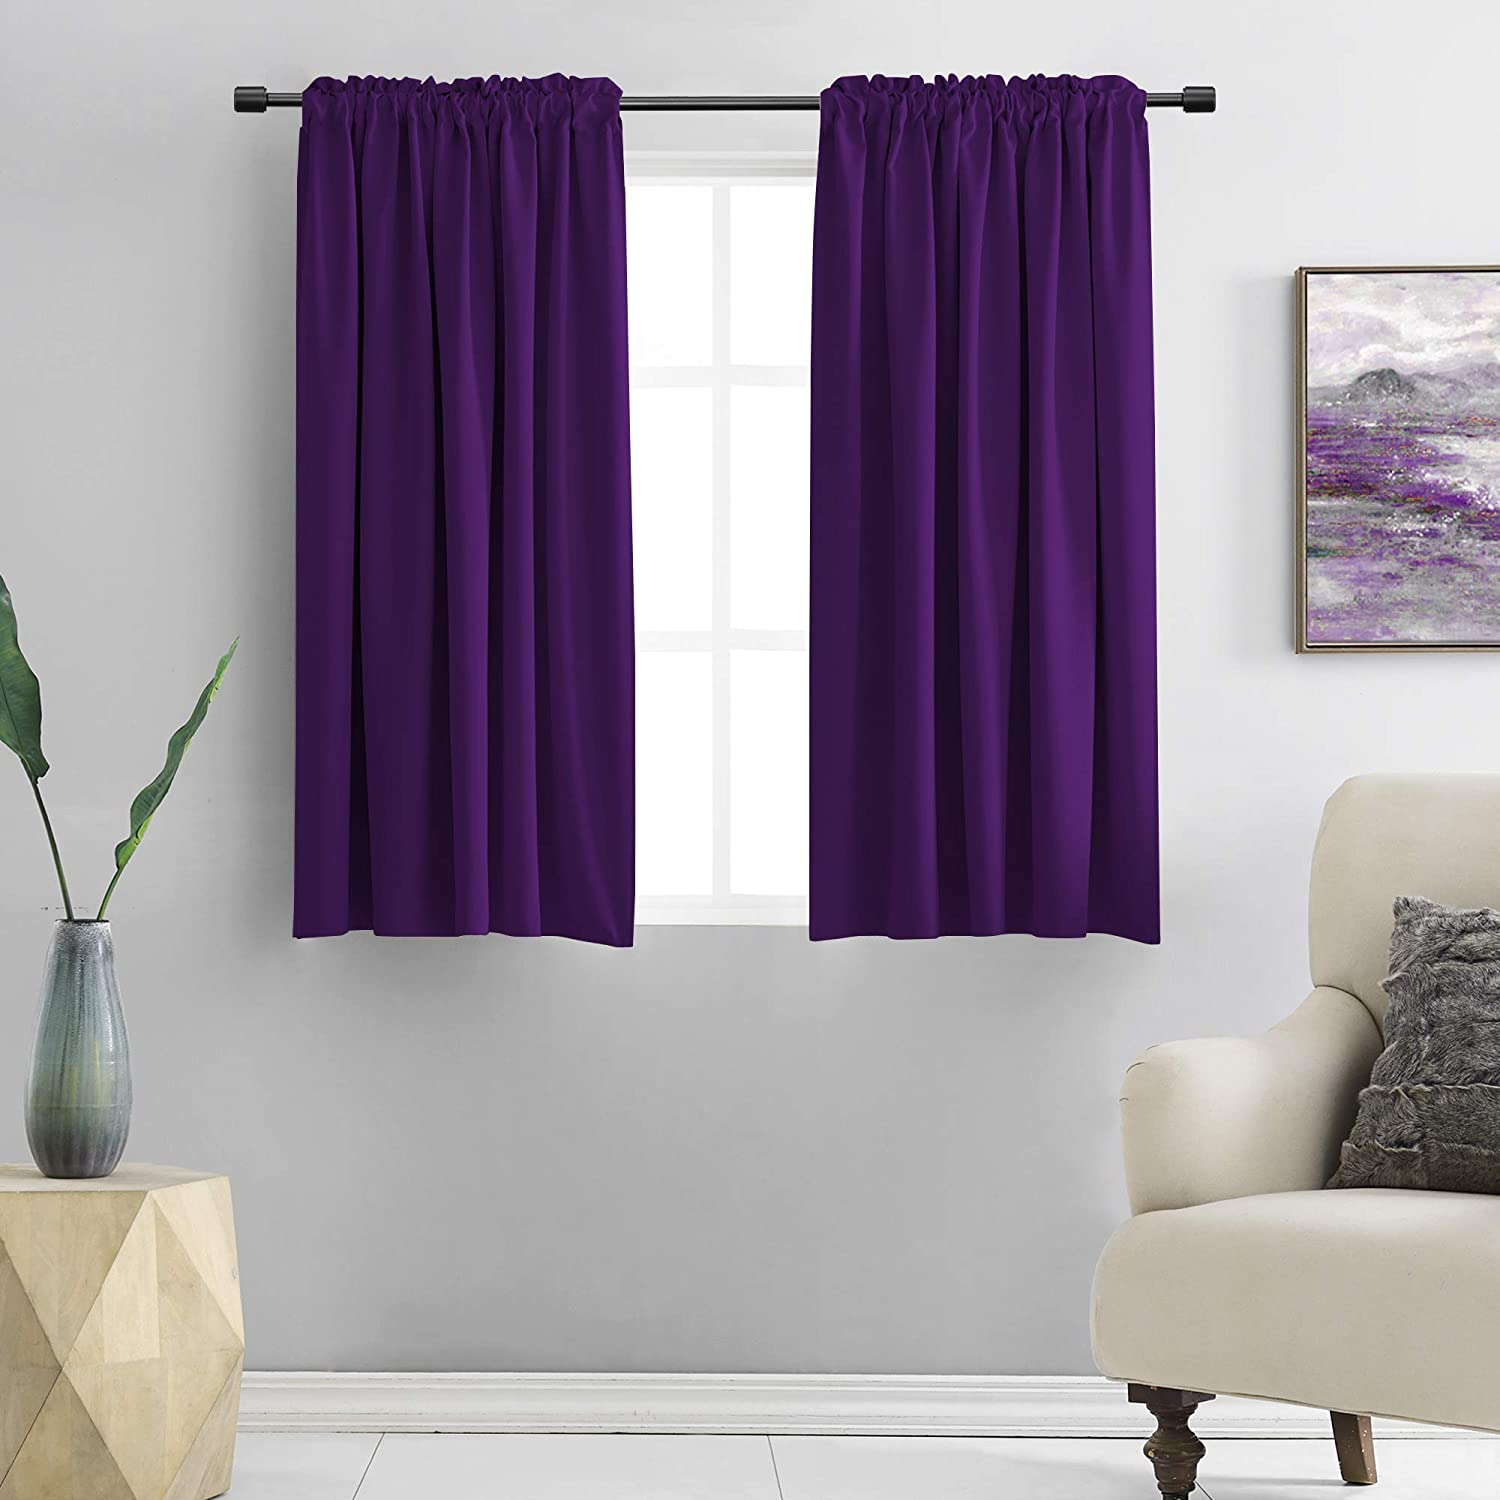 DONREN Royal Purple BlackoutCurtain Panels for Living Room - Thermal Insulated Room Darkening Rod Pocket Drapes for Window (42 x 45 Inch Length,2 Panels)